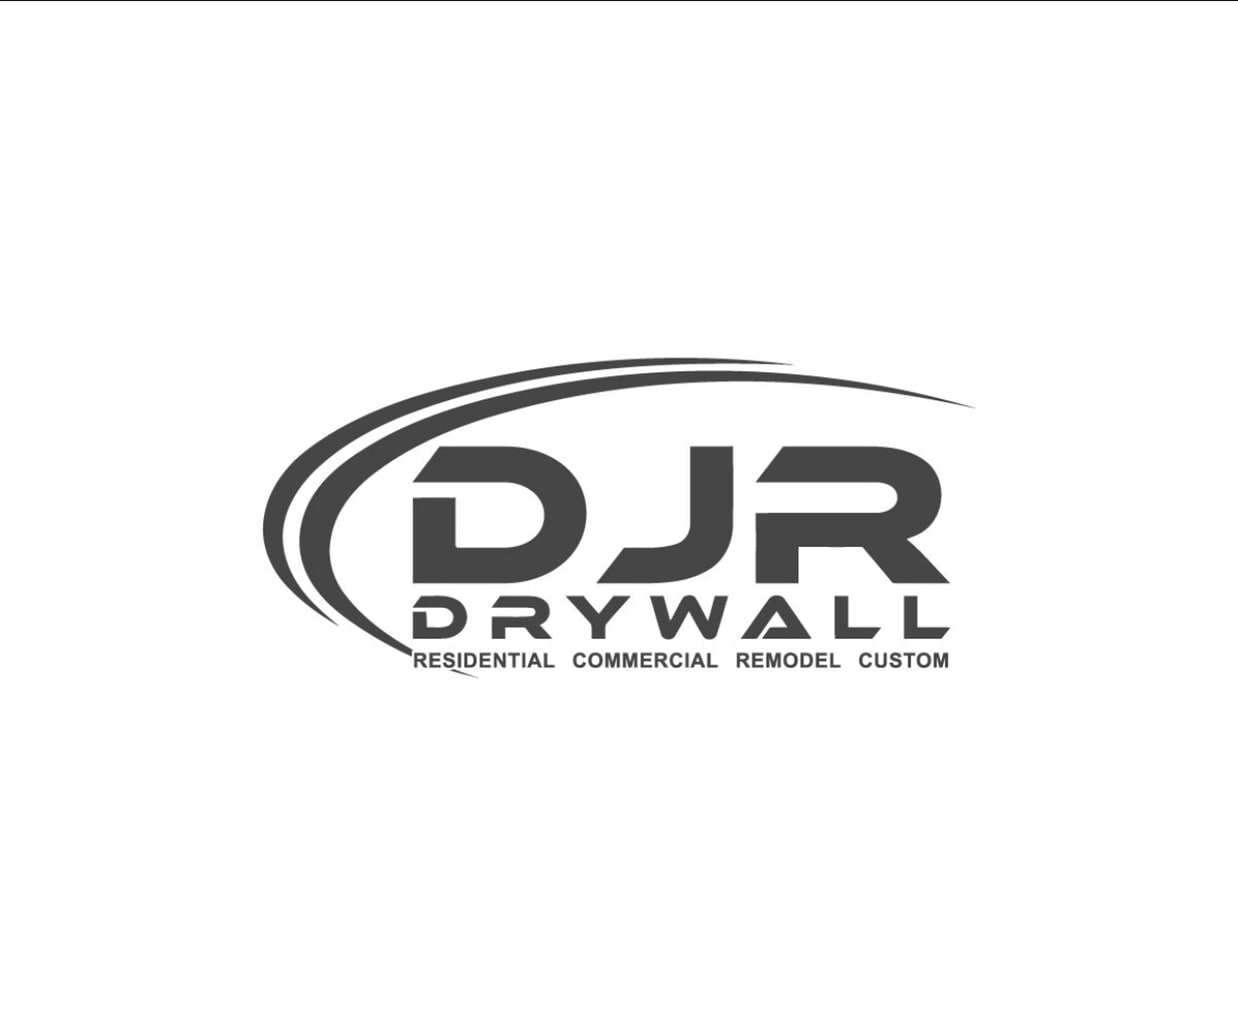 DJR Drywall